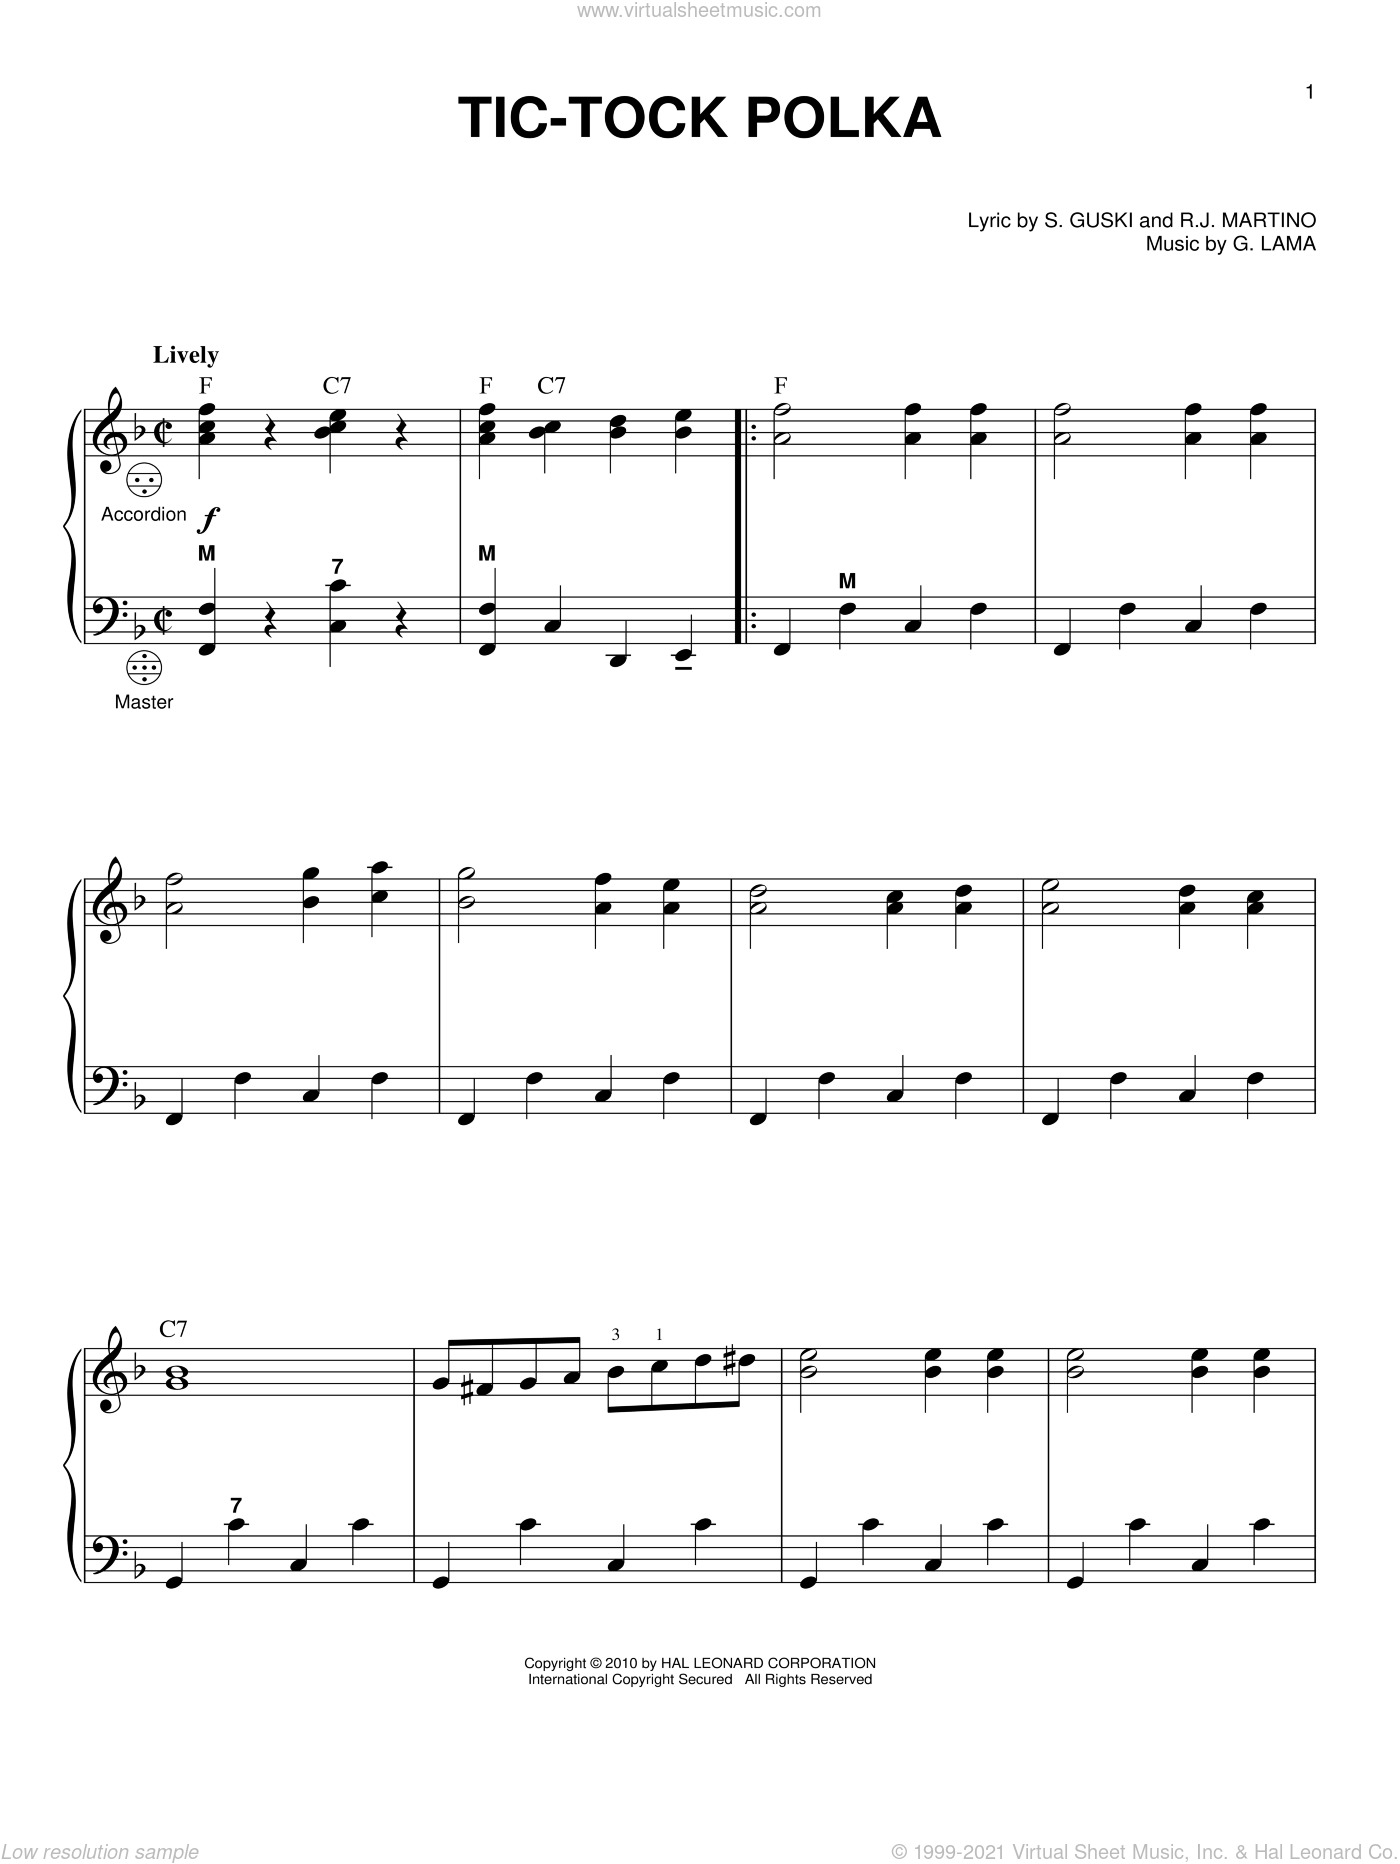 Tic-Tock Polka sheet music for accordion by S. Guski. Score Image Preview.